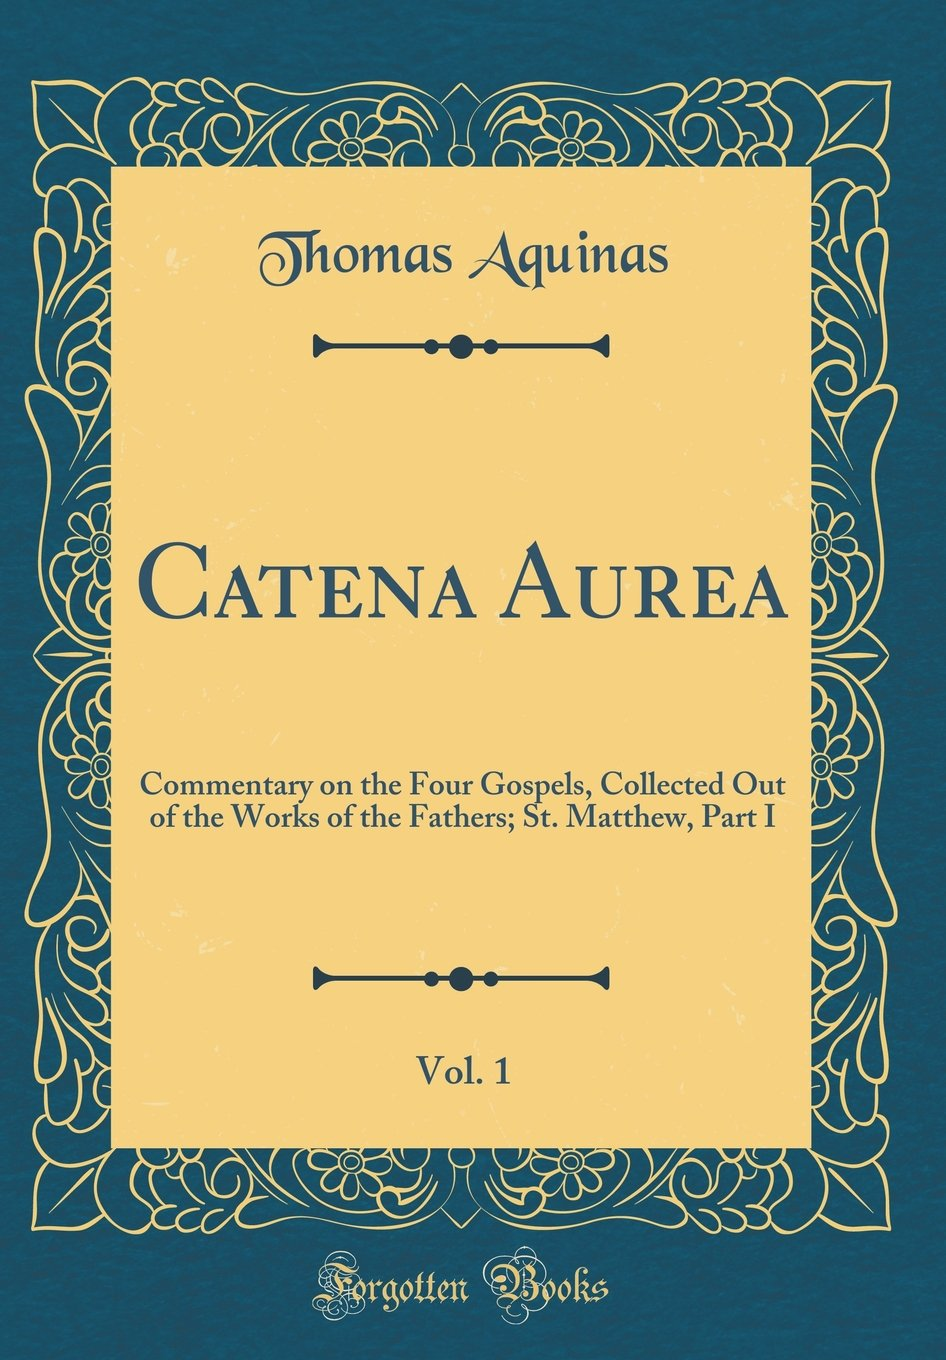 Image result for catena aurea